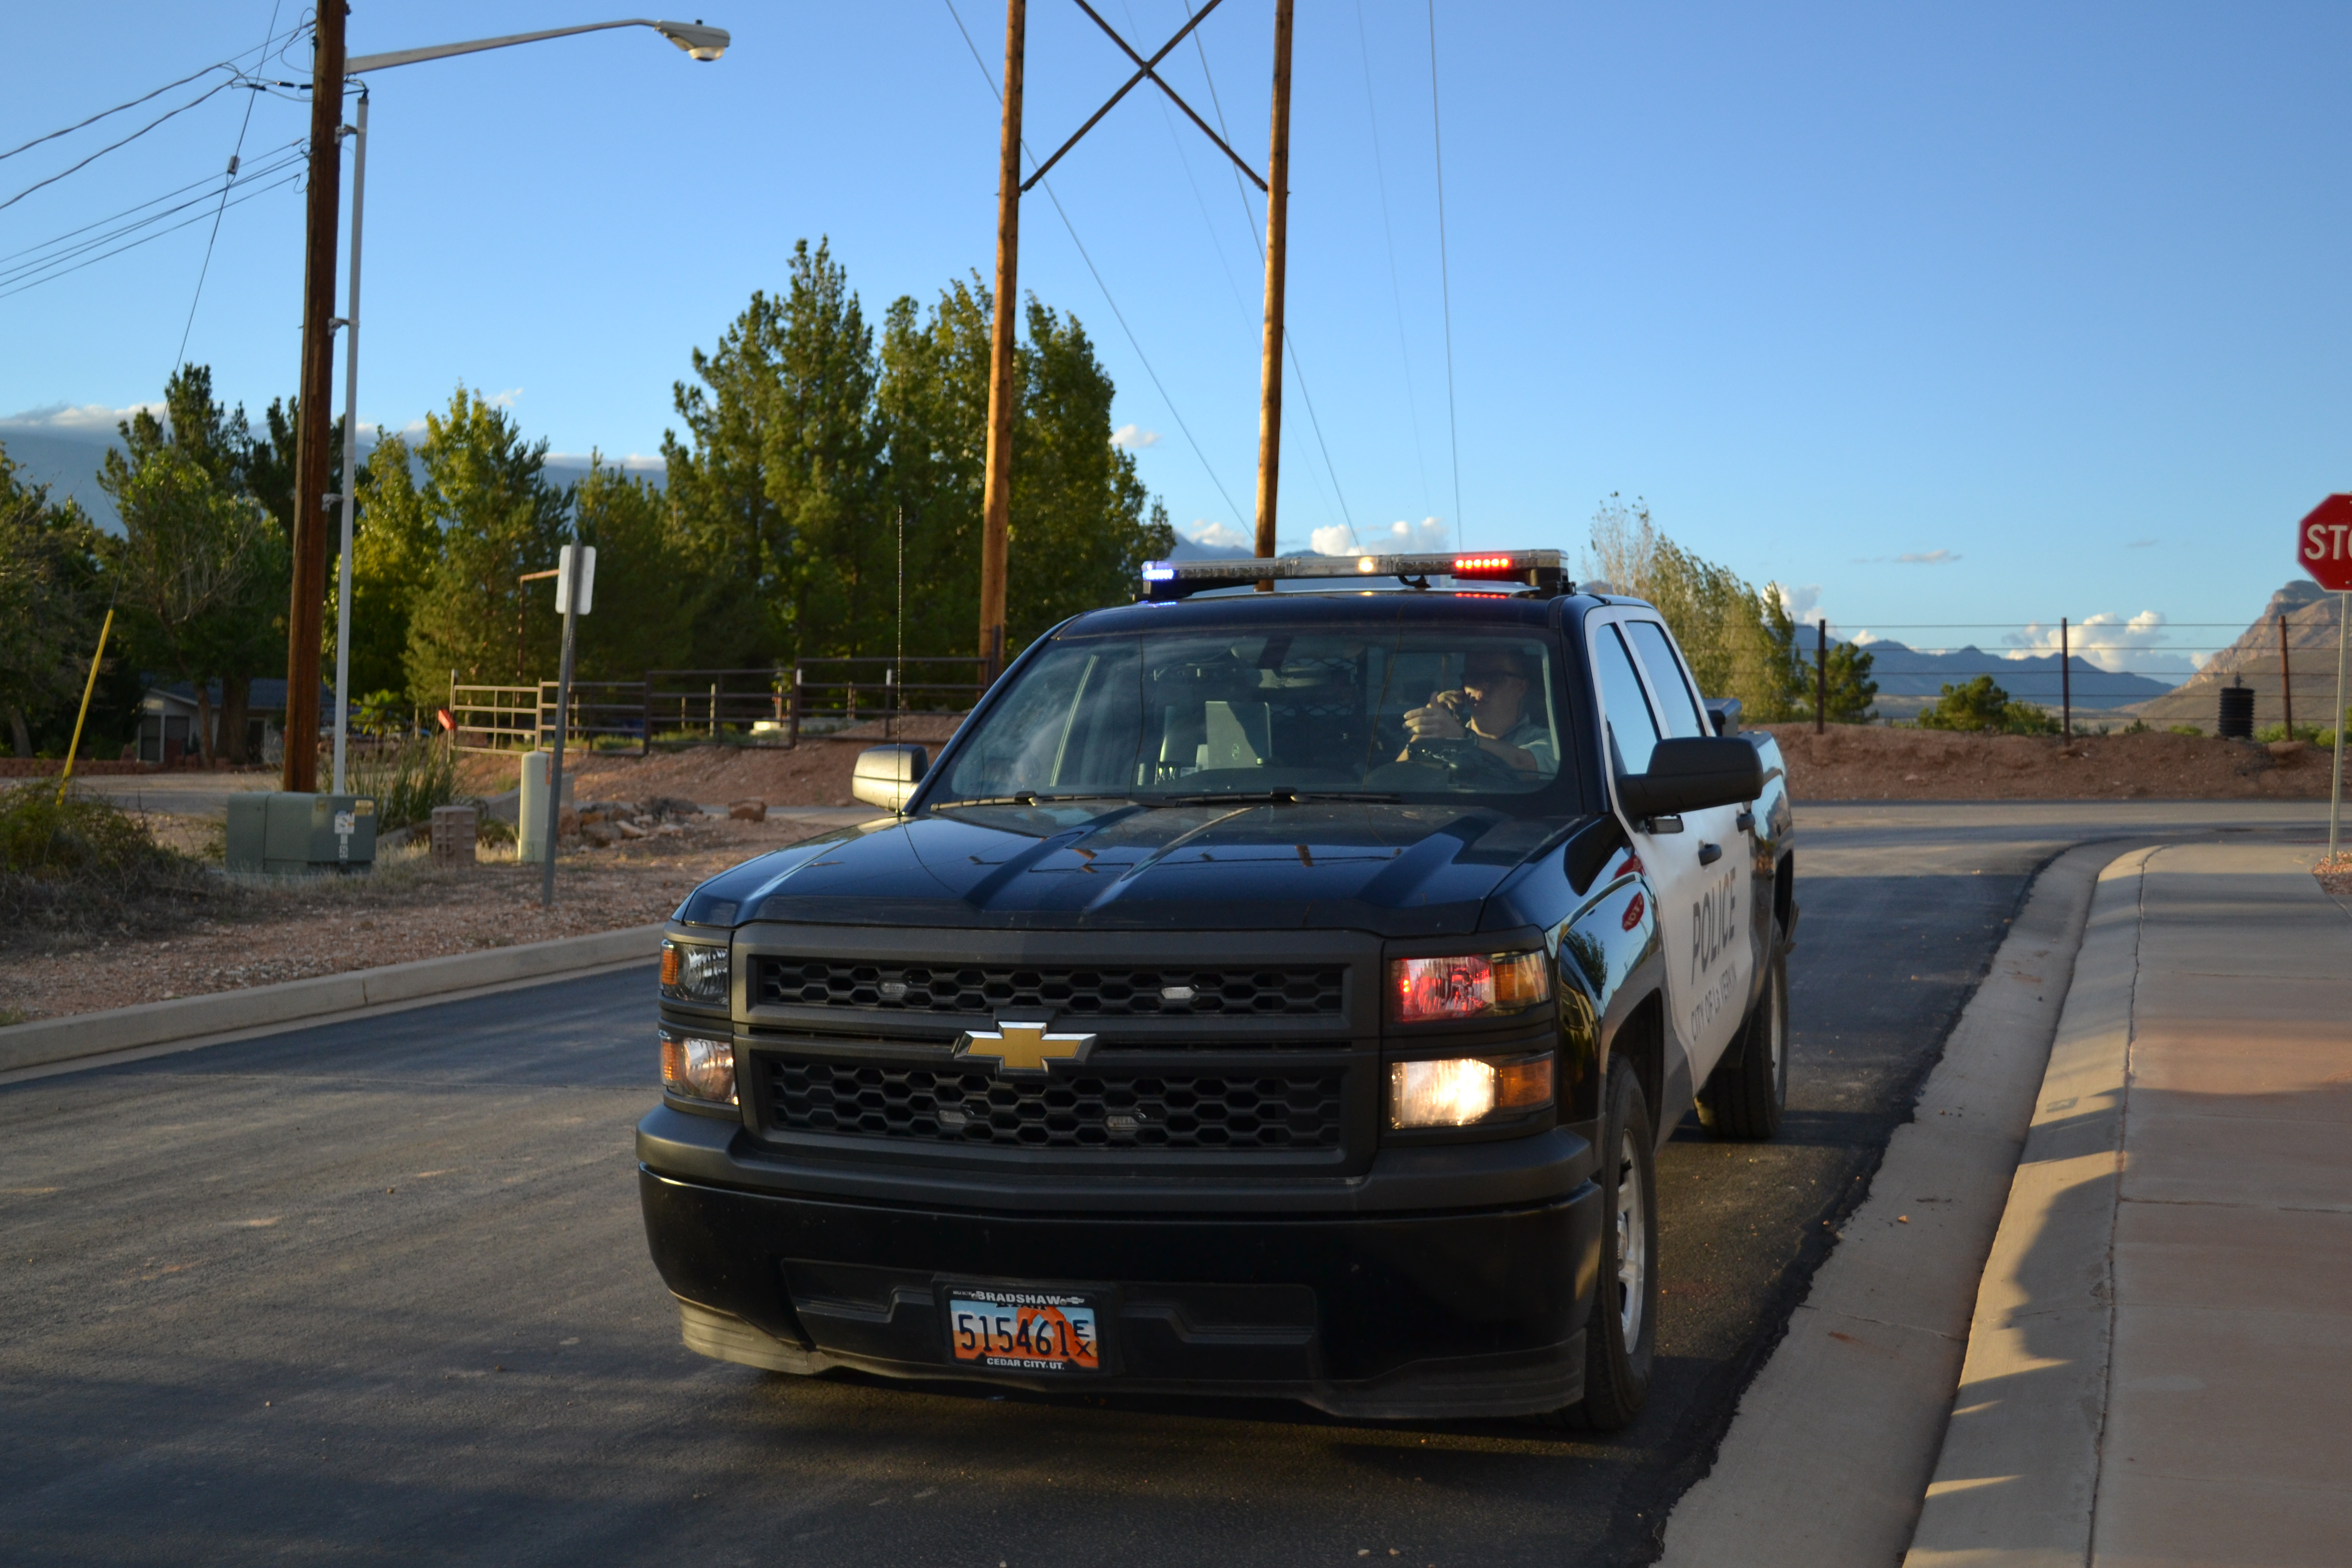 Police respond to the Confluence Park after receiving a call from an injured woman, La Verkin, Utah, Sept. 29, 1016 | Photo by Joseph Witham, St. George News